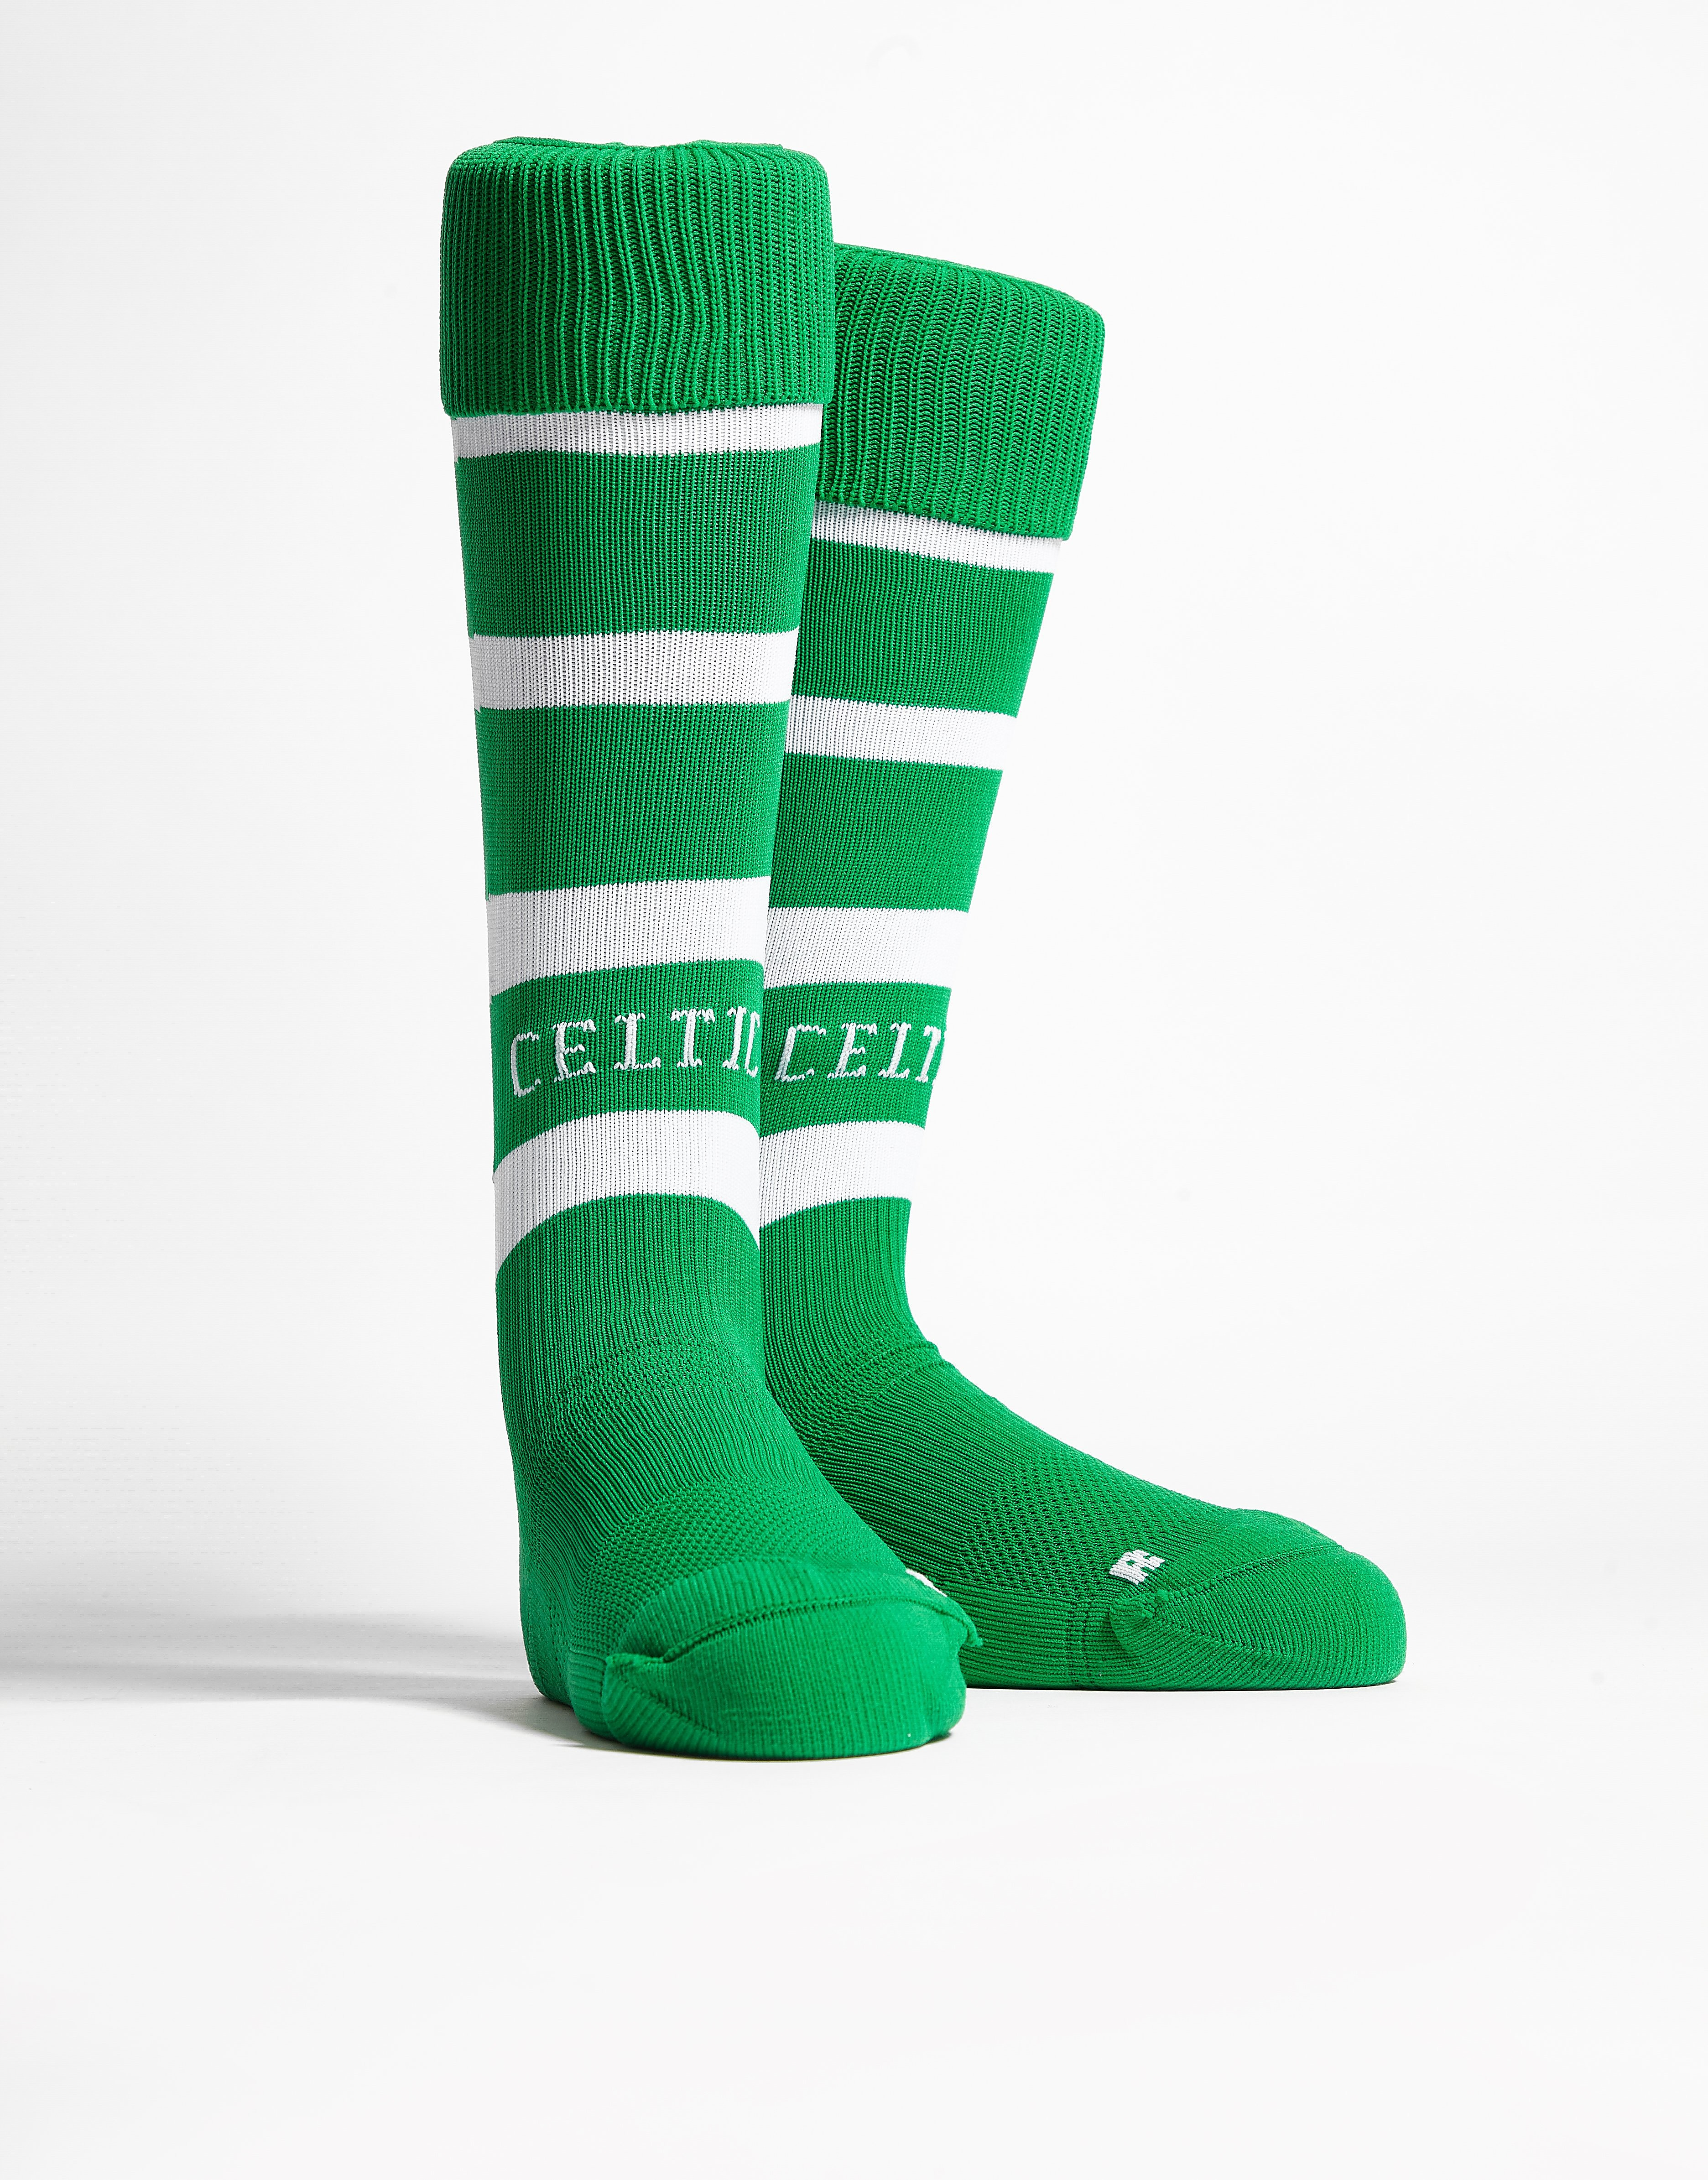 New Balance Celtic FC 2018/19 Home Socks